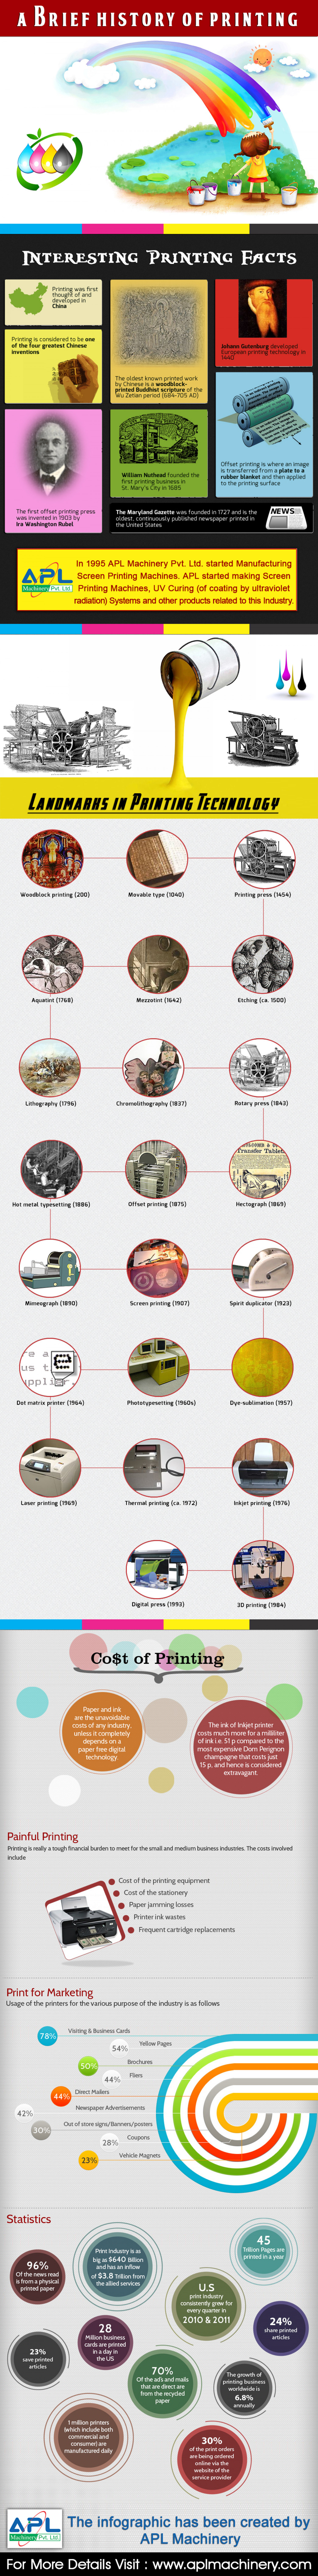 A Brief History of Printing Infographic